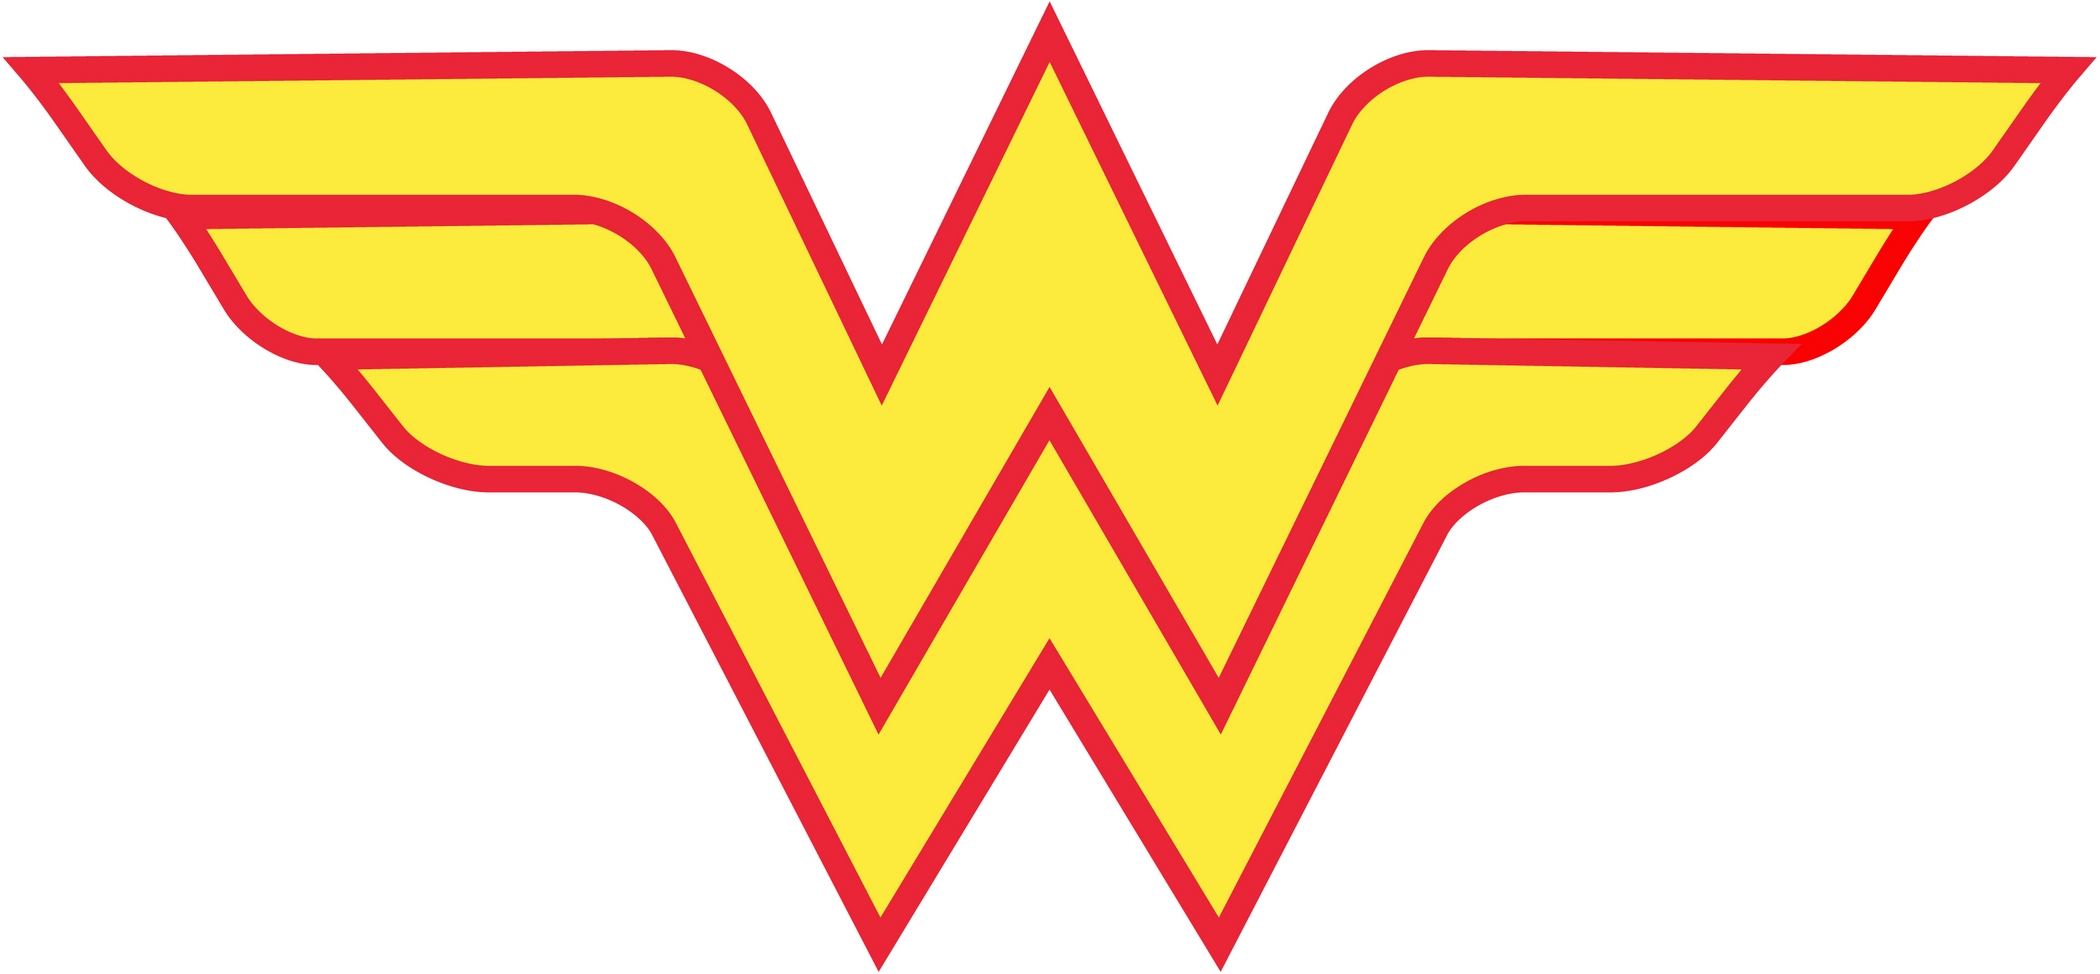 There Is 10 Wonder Woman Border   Free Cliparts All Used For Free